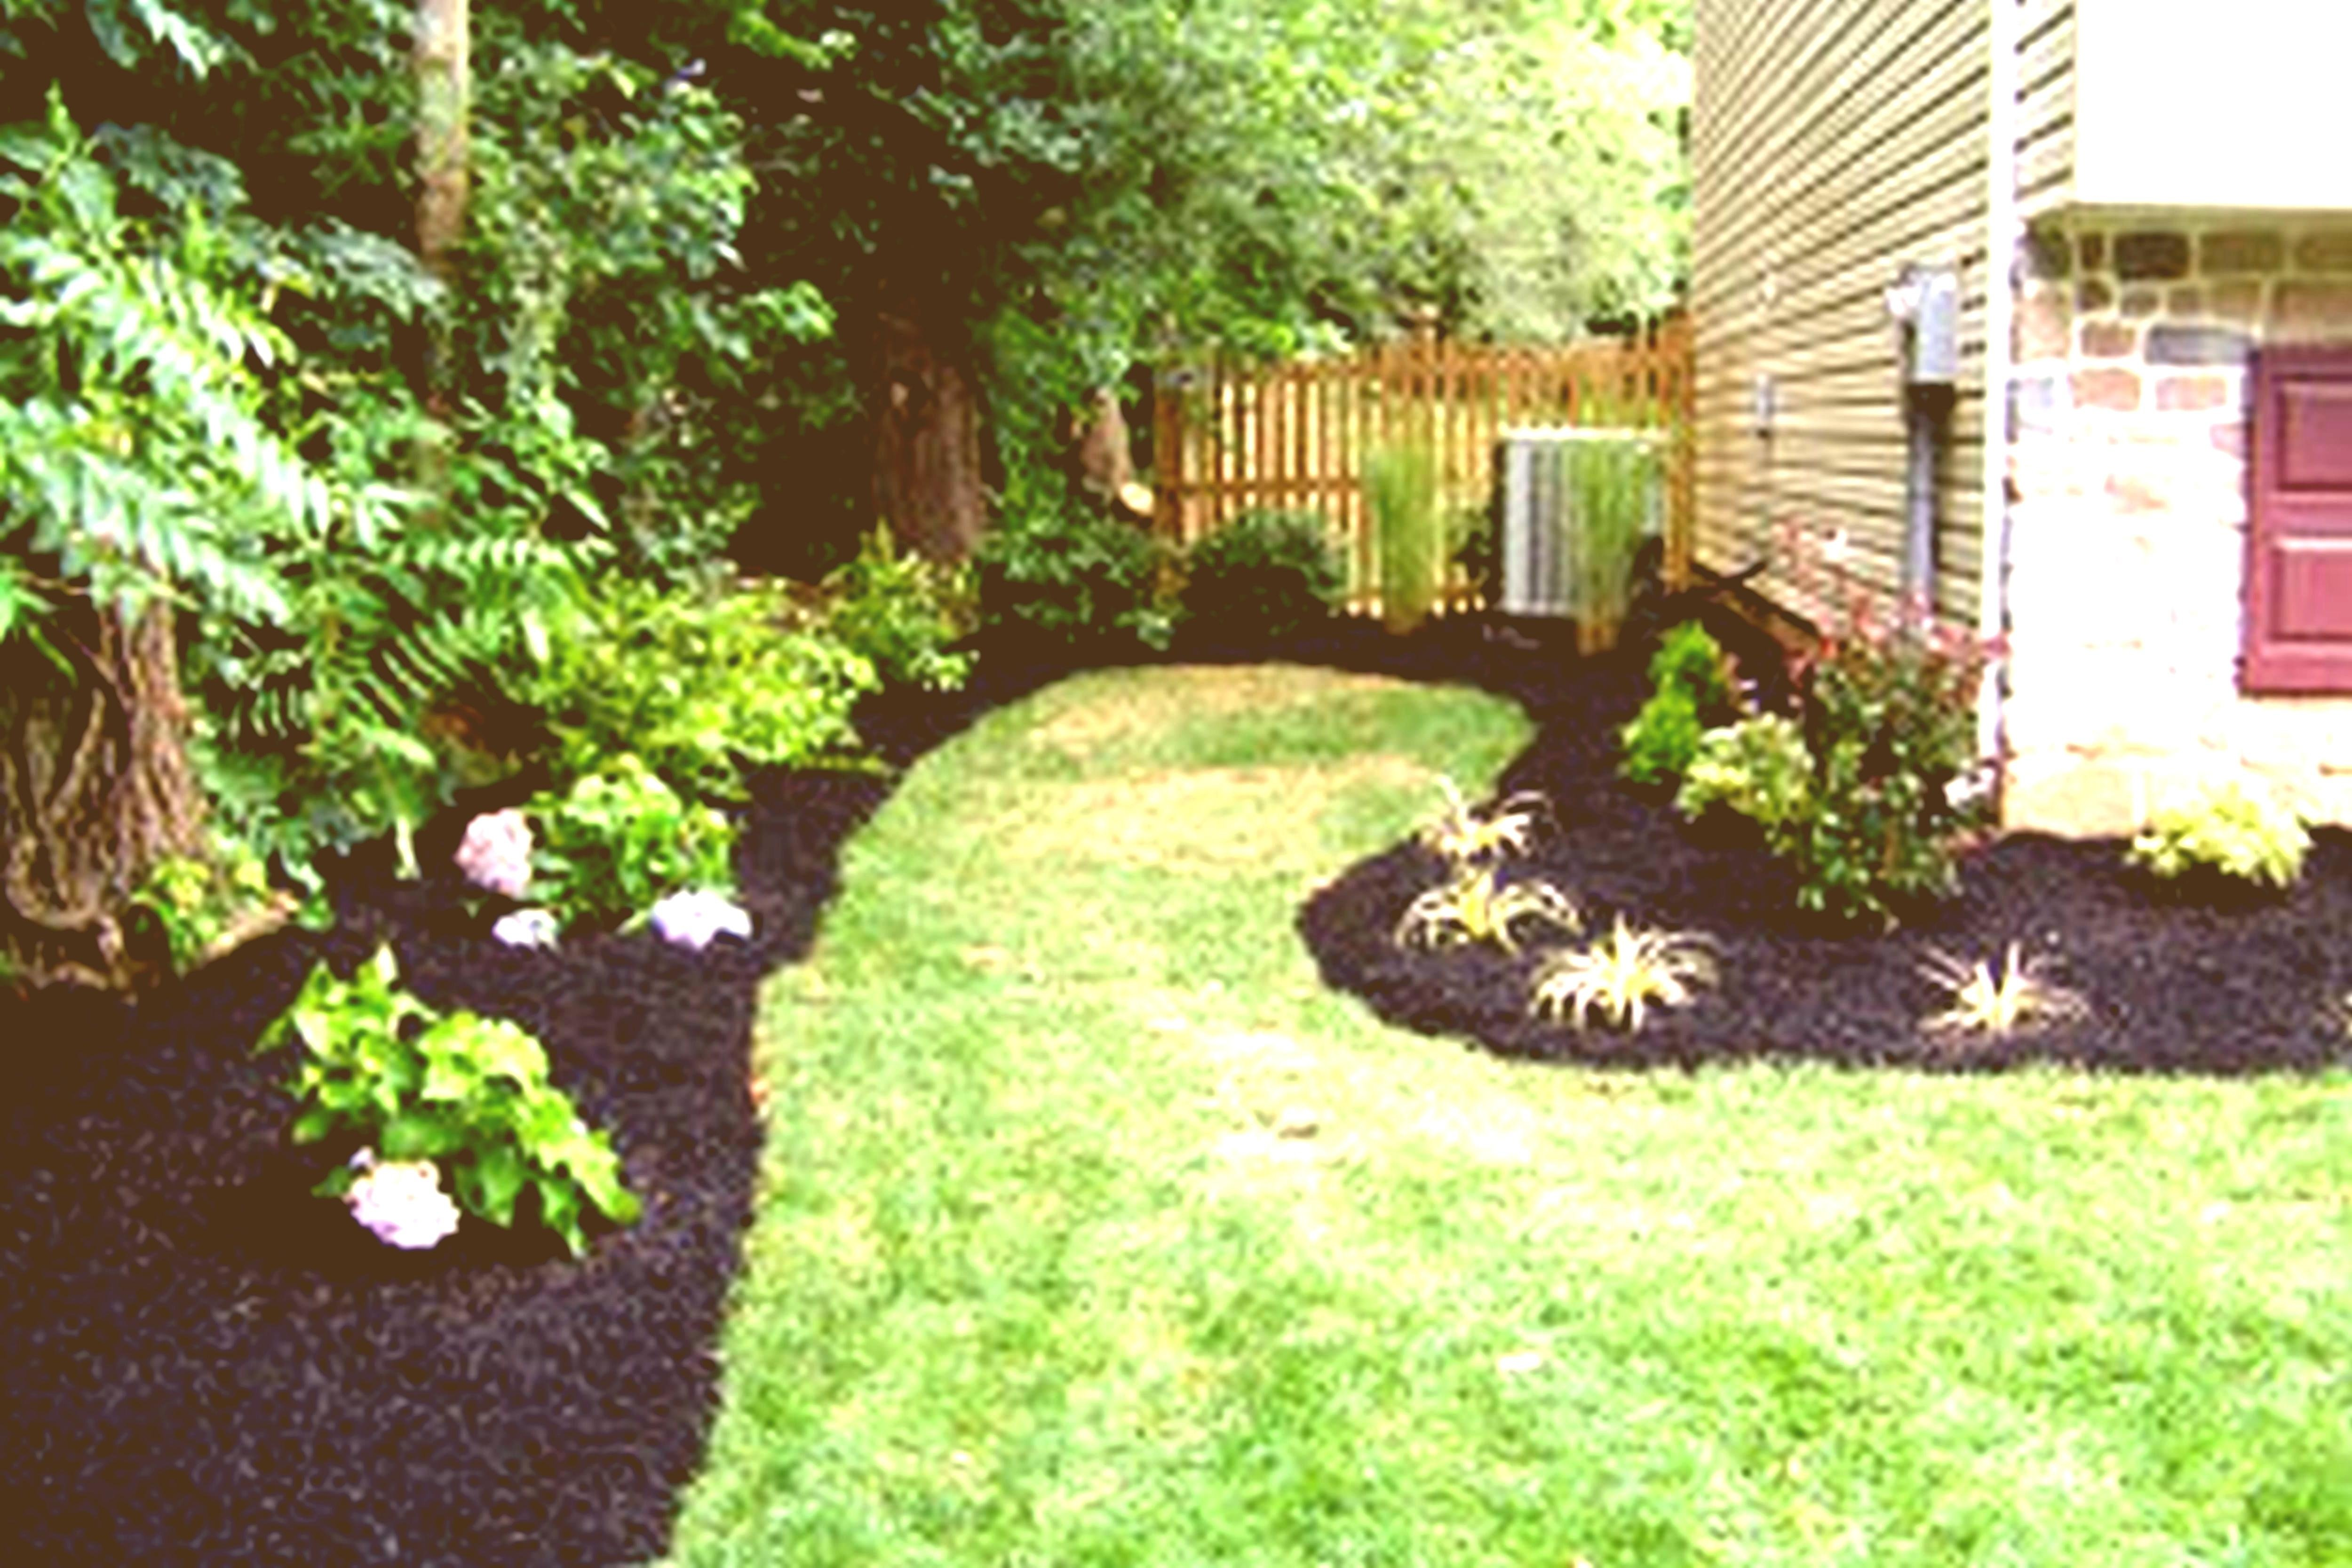 10 Attractive Landscaping Ideas For Small Yards small yard landscaping ideas afrozep decor and galleries front 2020